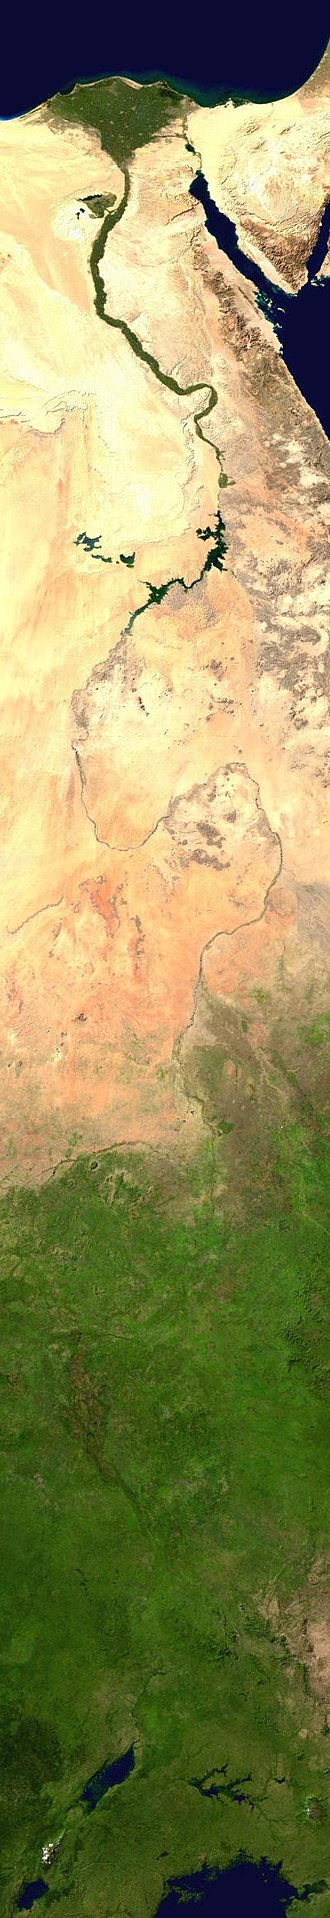 Nile - Composite satellite image of the White Nile